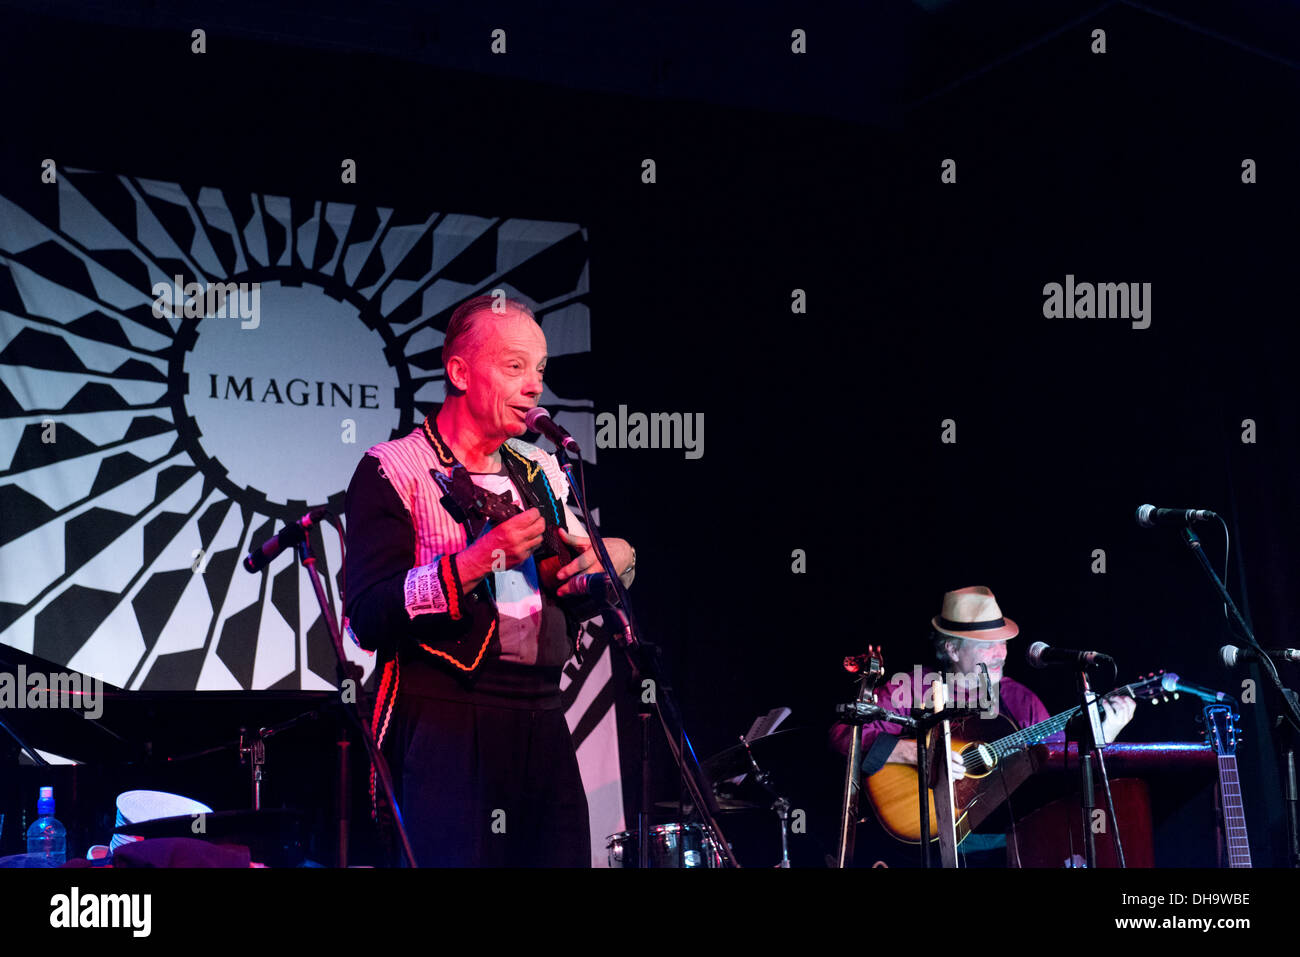 Mic Conway performing at the Aquarius Ball during the 40th Anniversary of the Aquarius Festival in Nimbin. - Stock Image